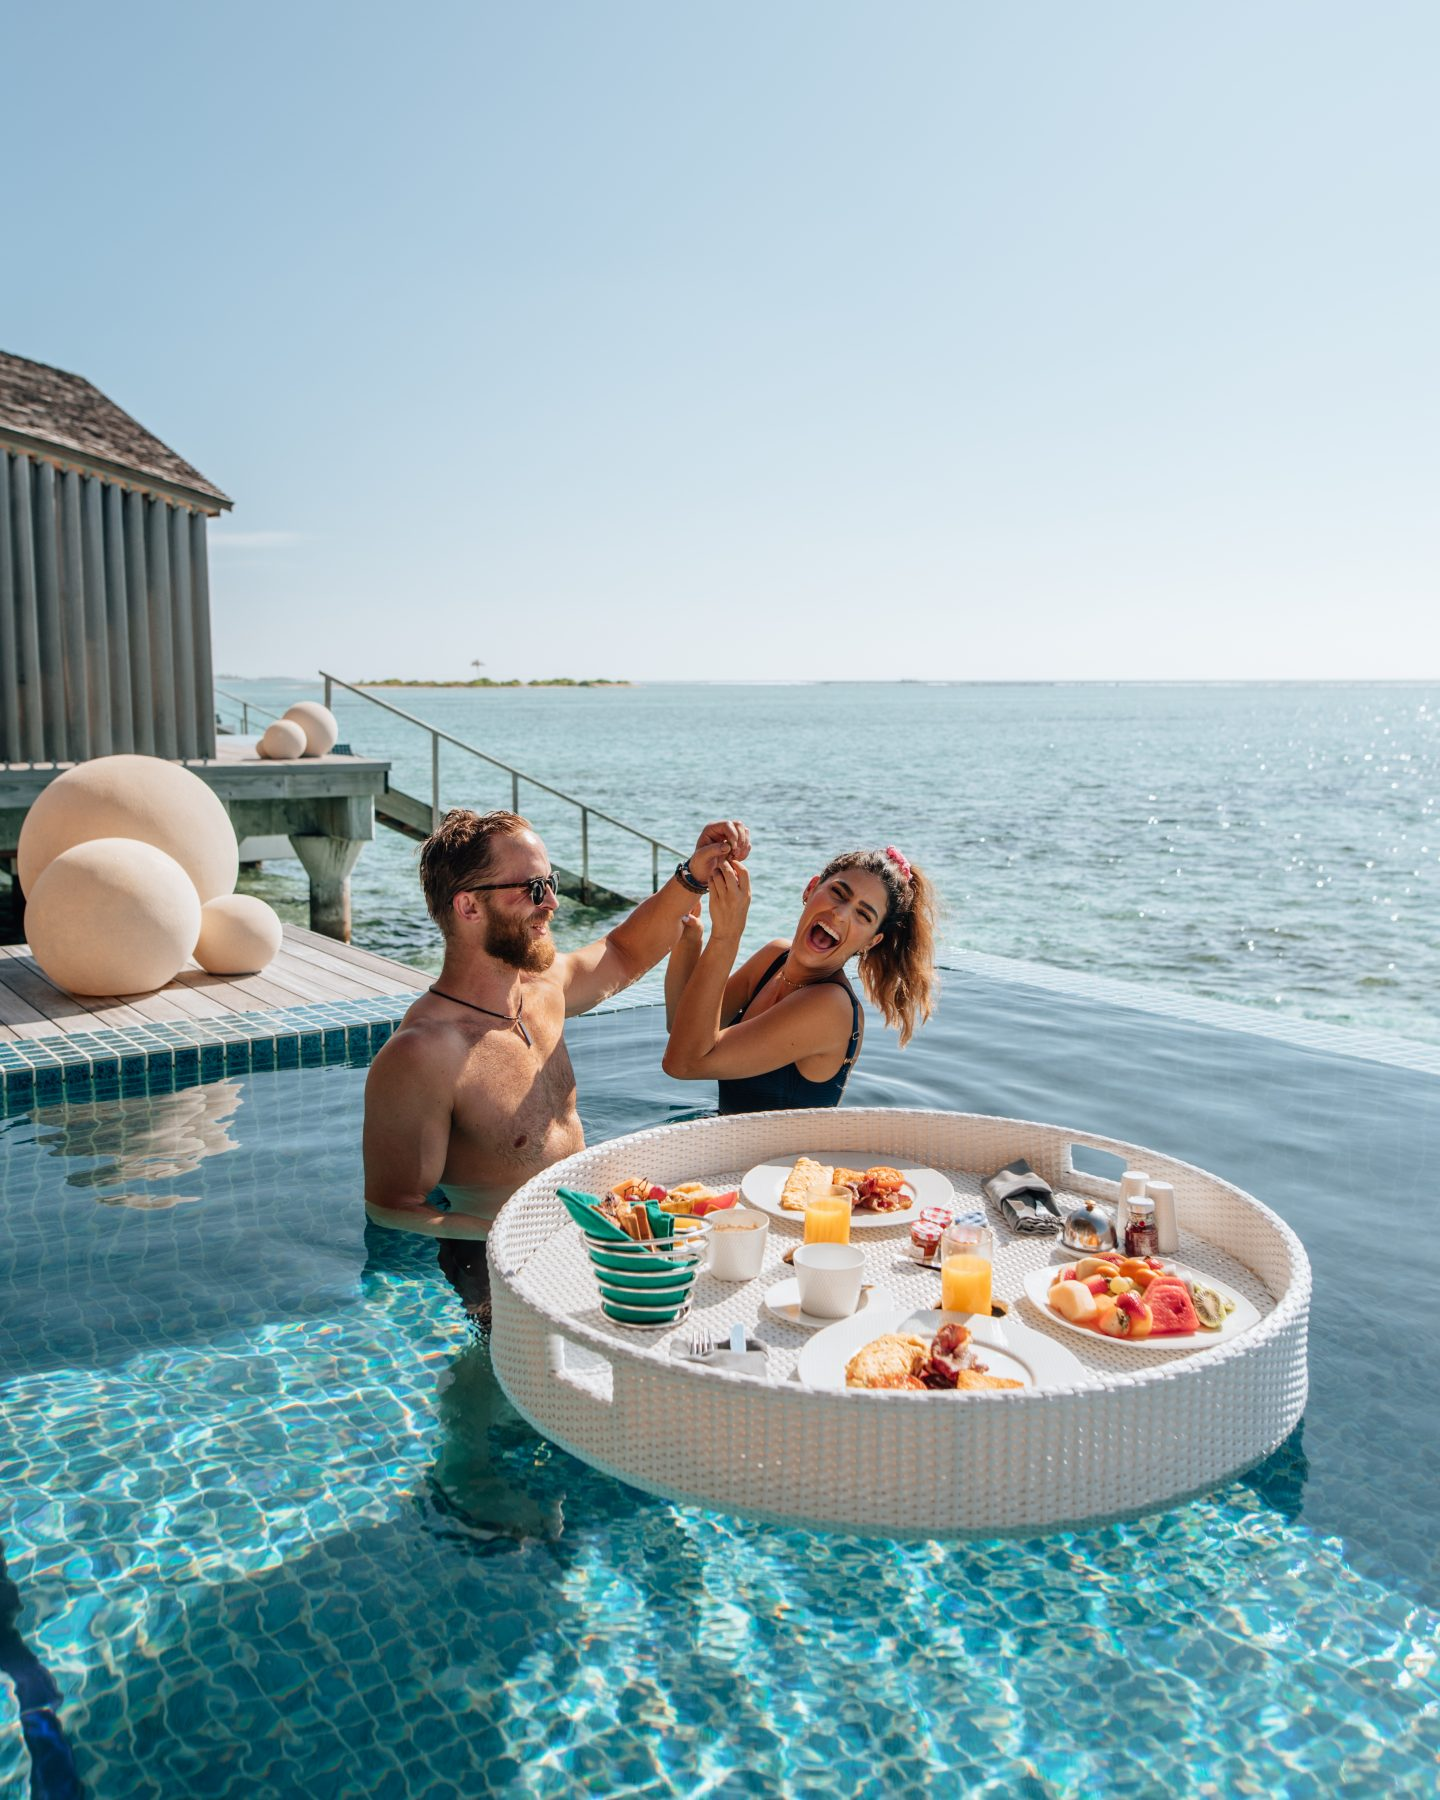 Enjoying a floating breakfast in the pool at Club Med Finolhu in the Madlives, an all-inclusive resort